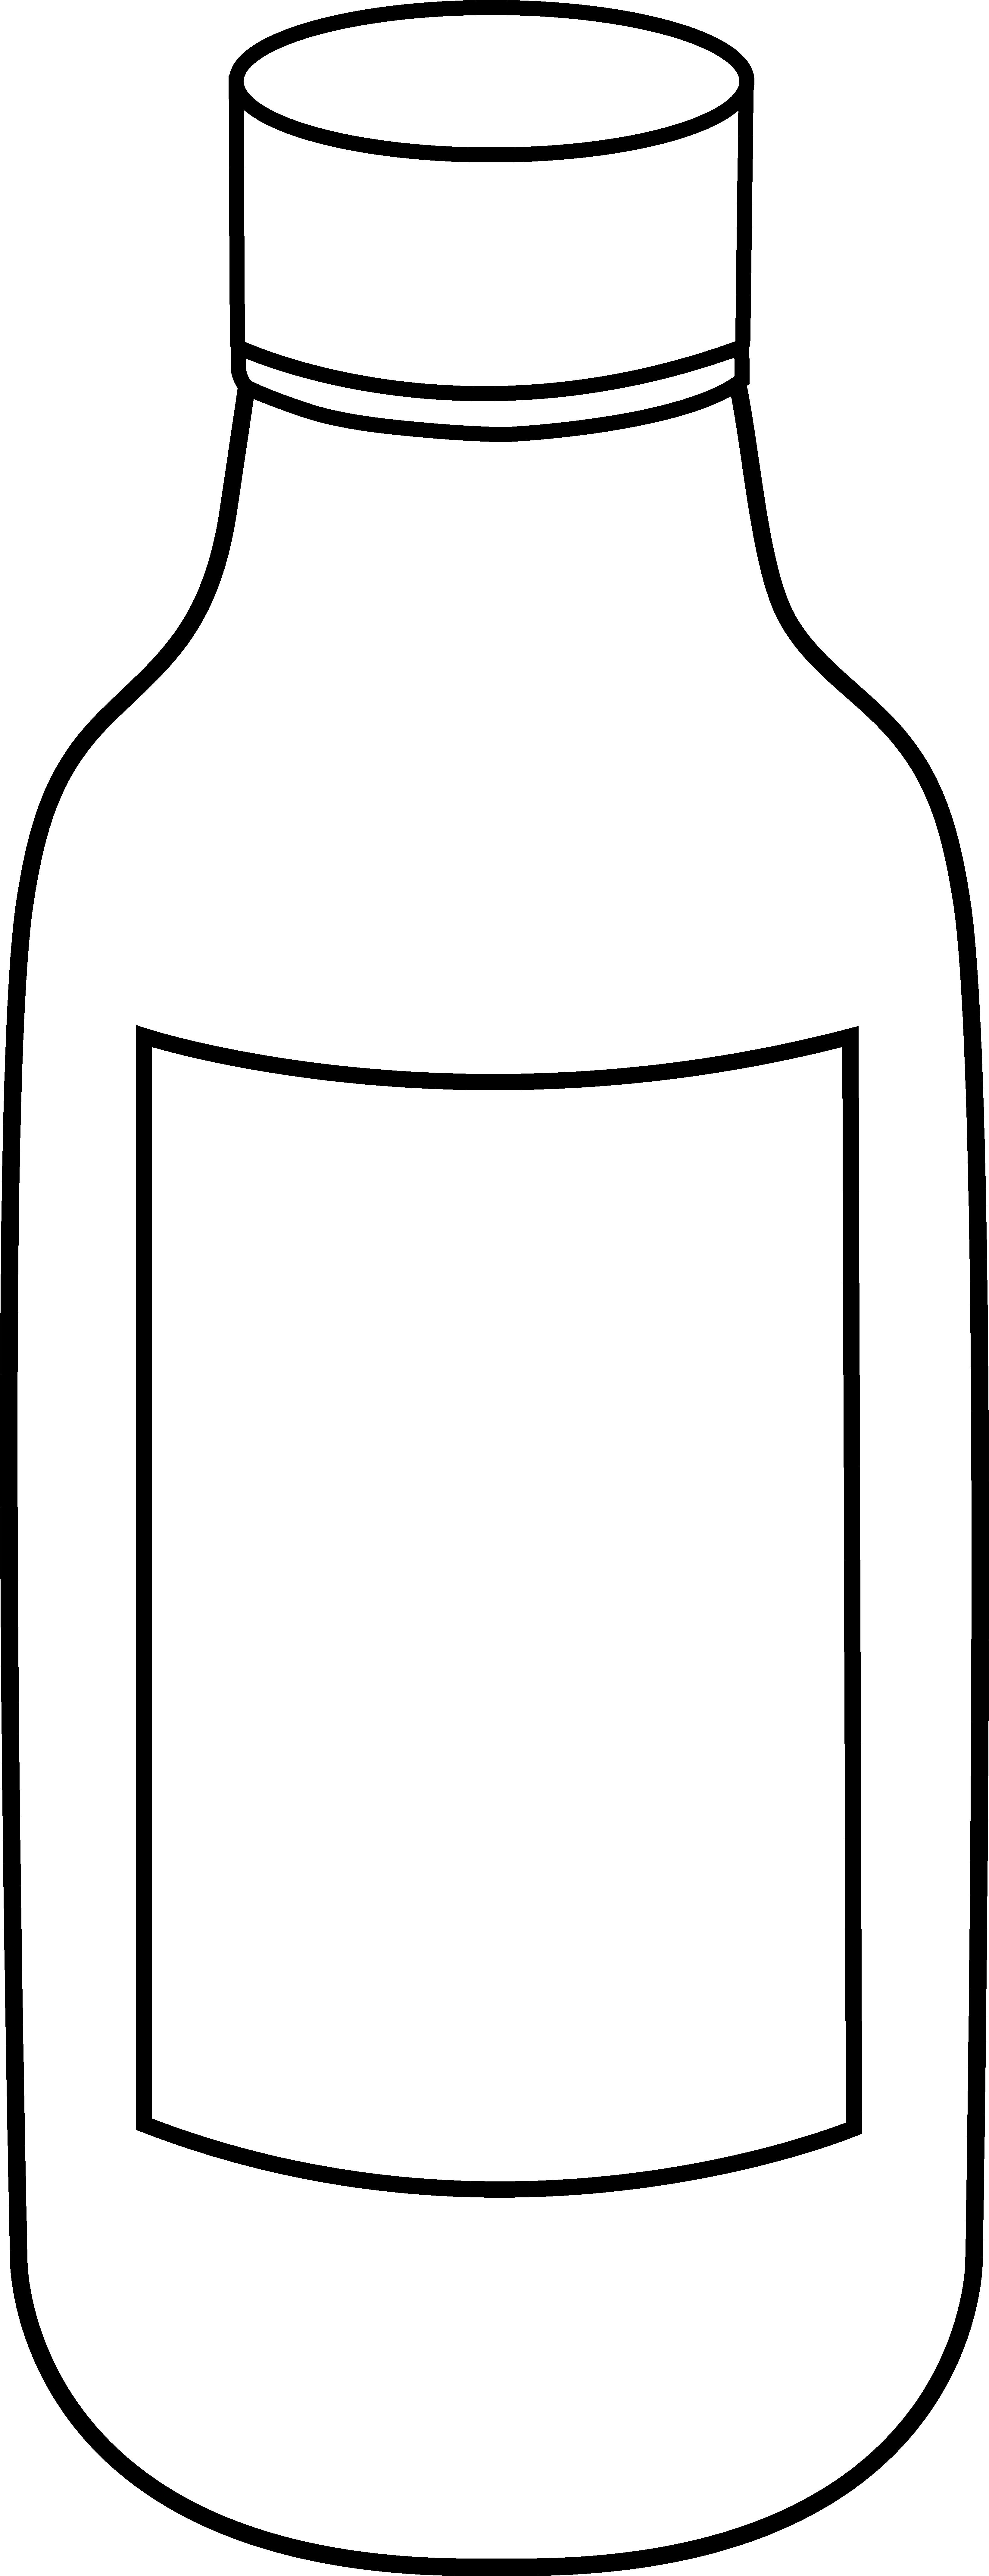 Apple cider drink black and white clipart black and white Wine bottle coloring pages black and white